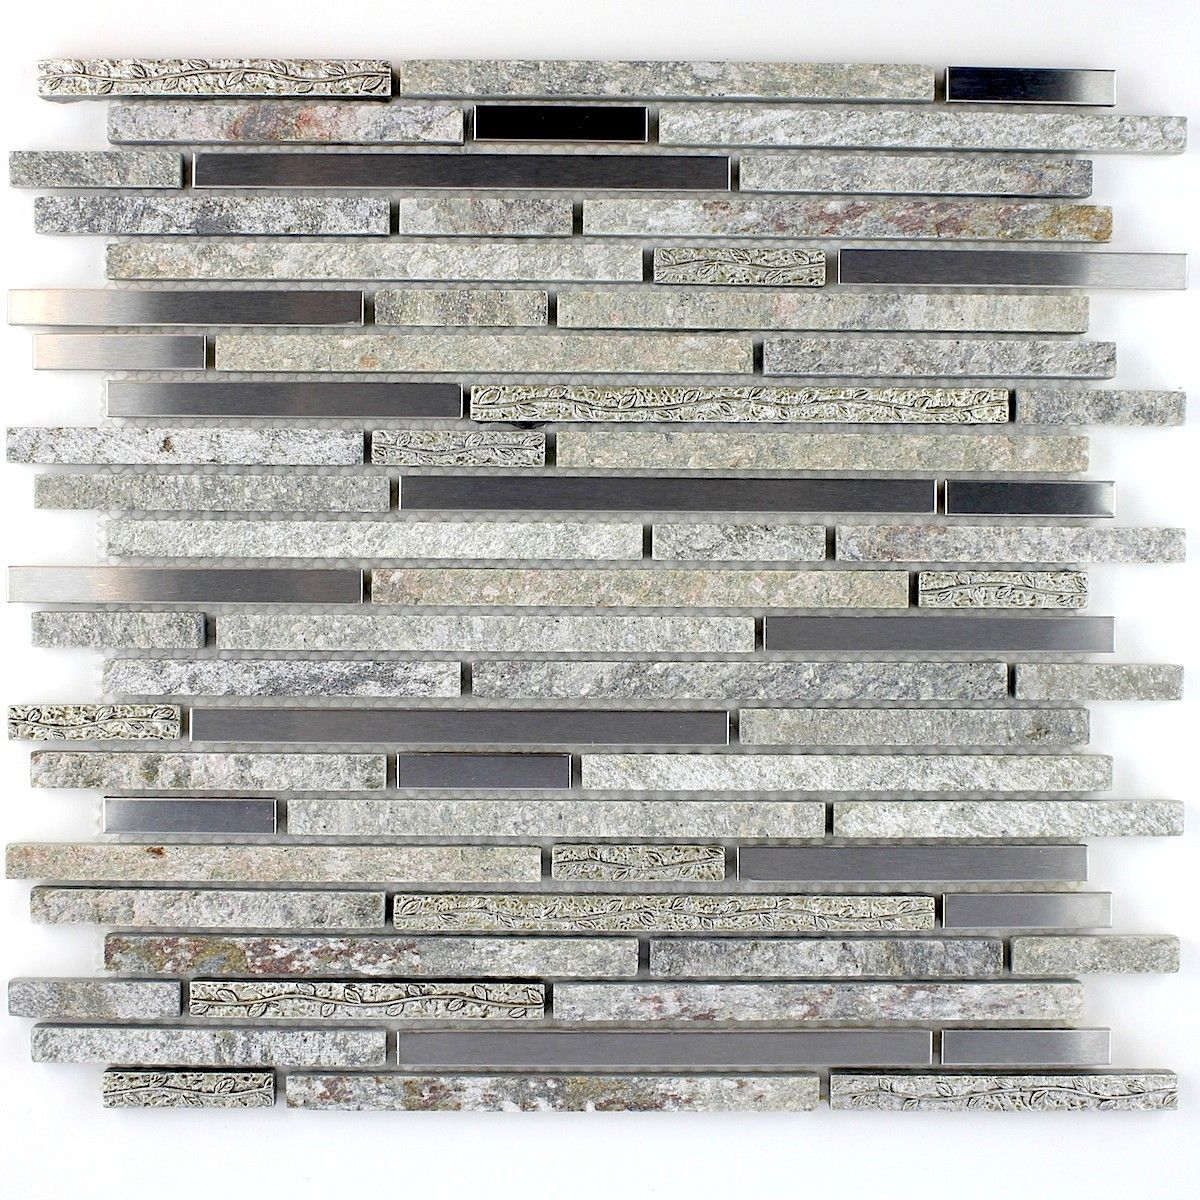 Mosaique carrelage pierre et inox 1 plaque radus 11 70 for Carrelage inox fr